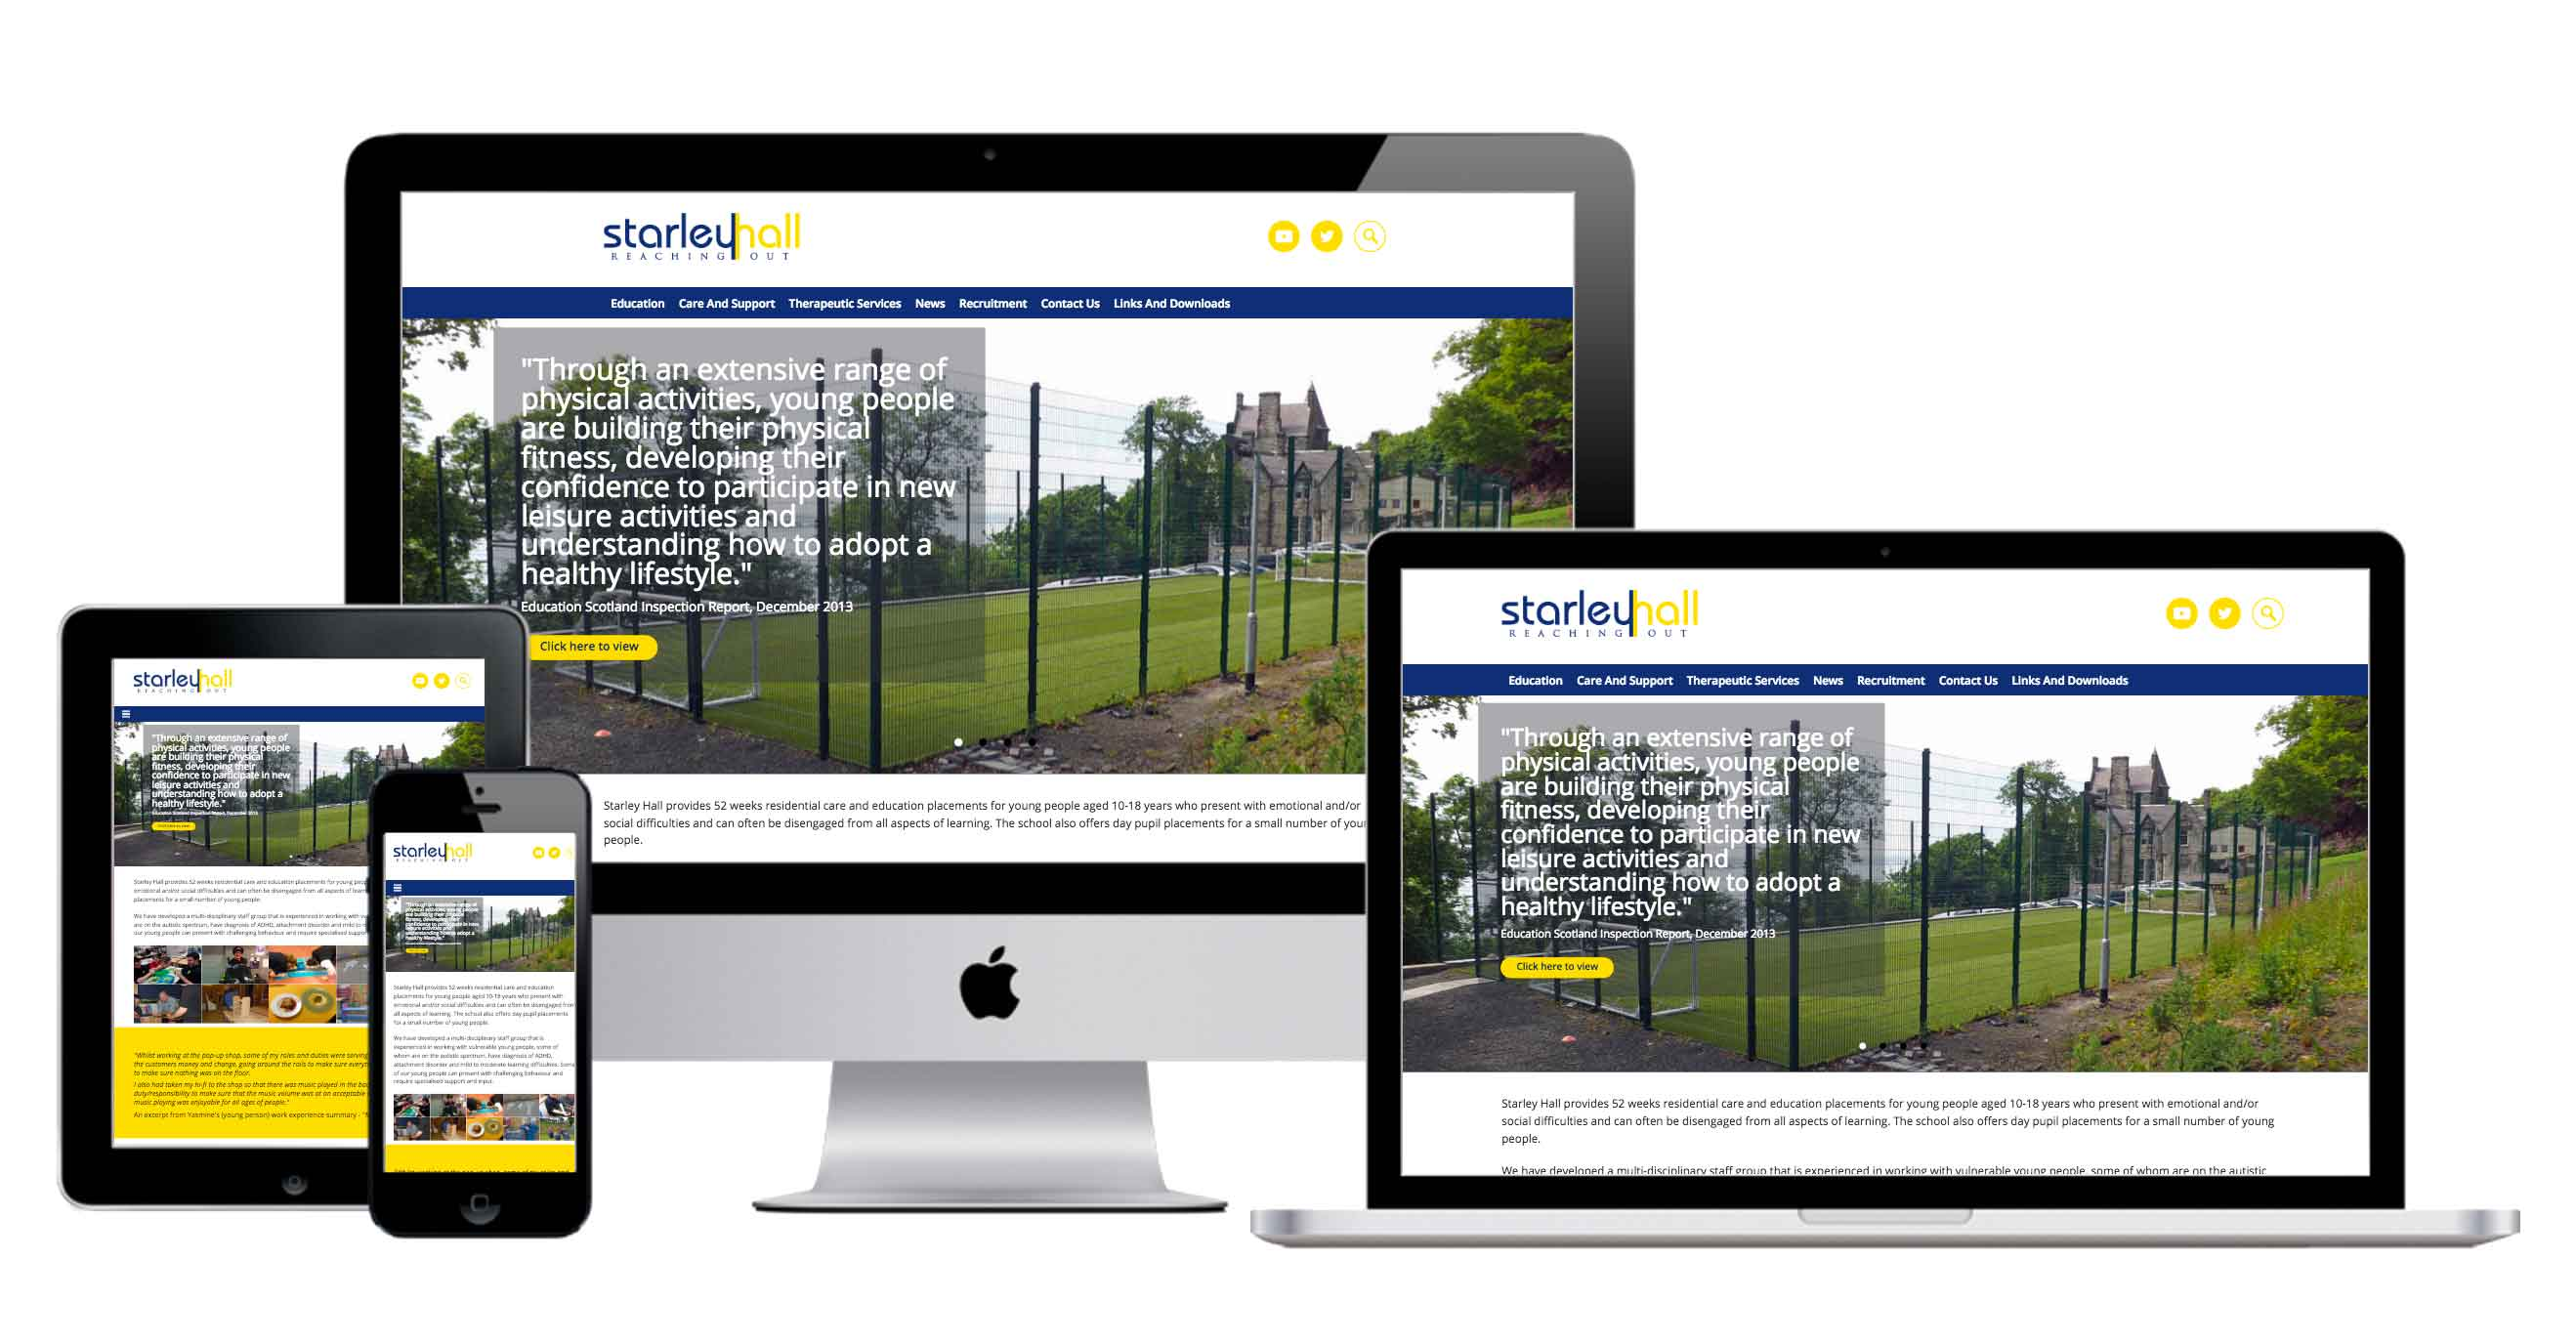 responsive website for starley hall school